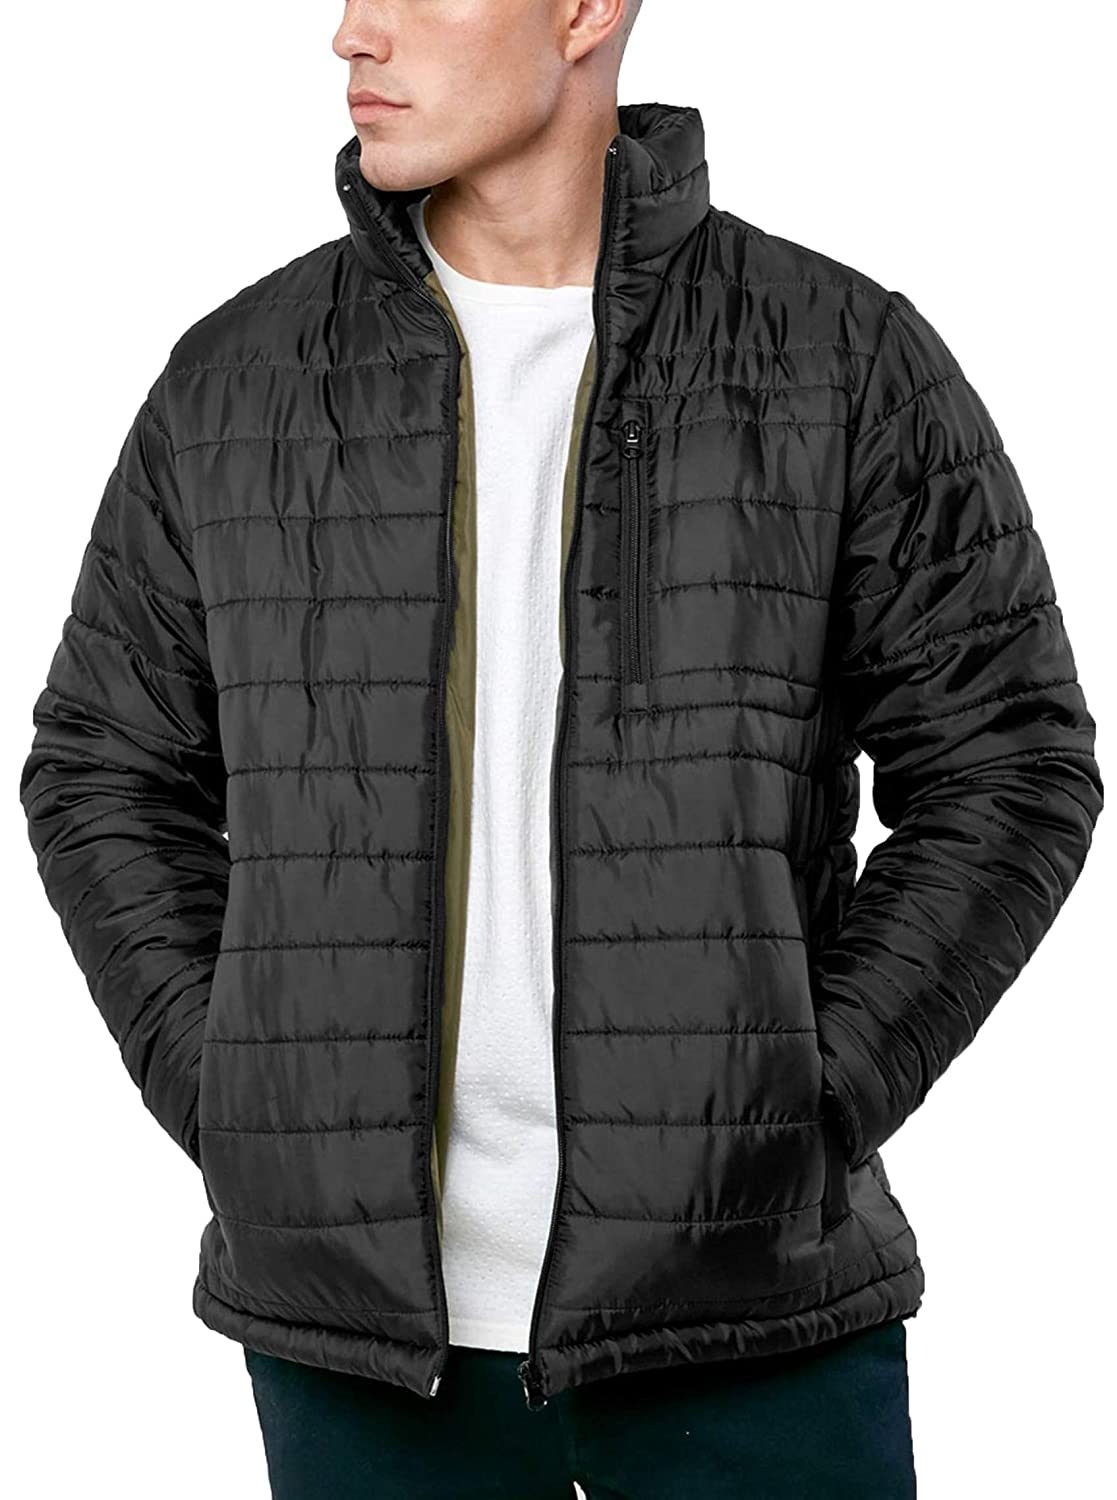 95d31f300 Broken Standard Mens Quilted MA1 Bomber Jacket Padded Coat Winter ...